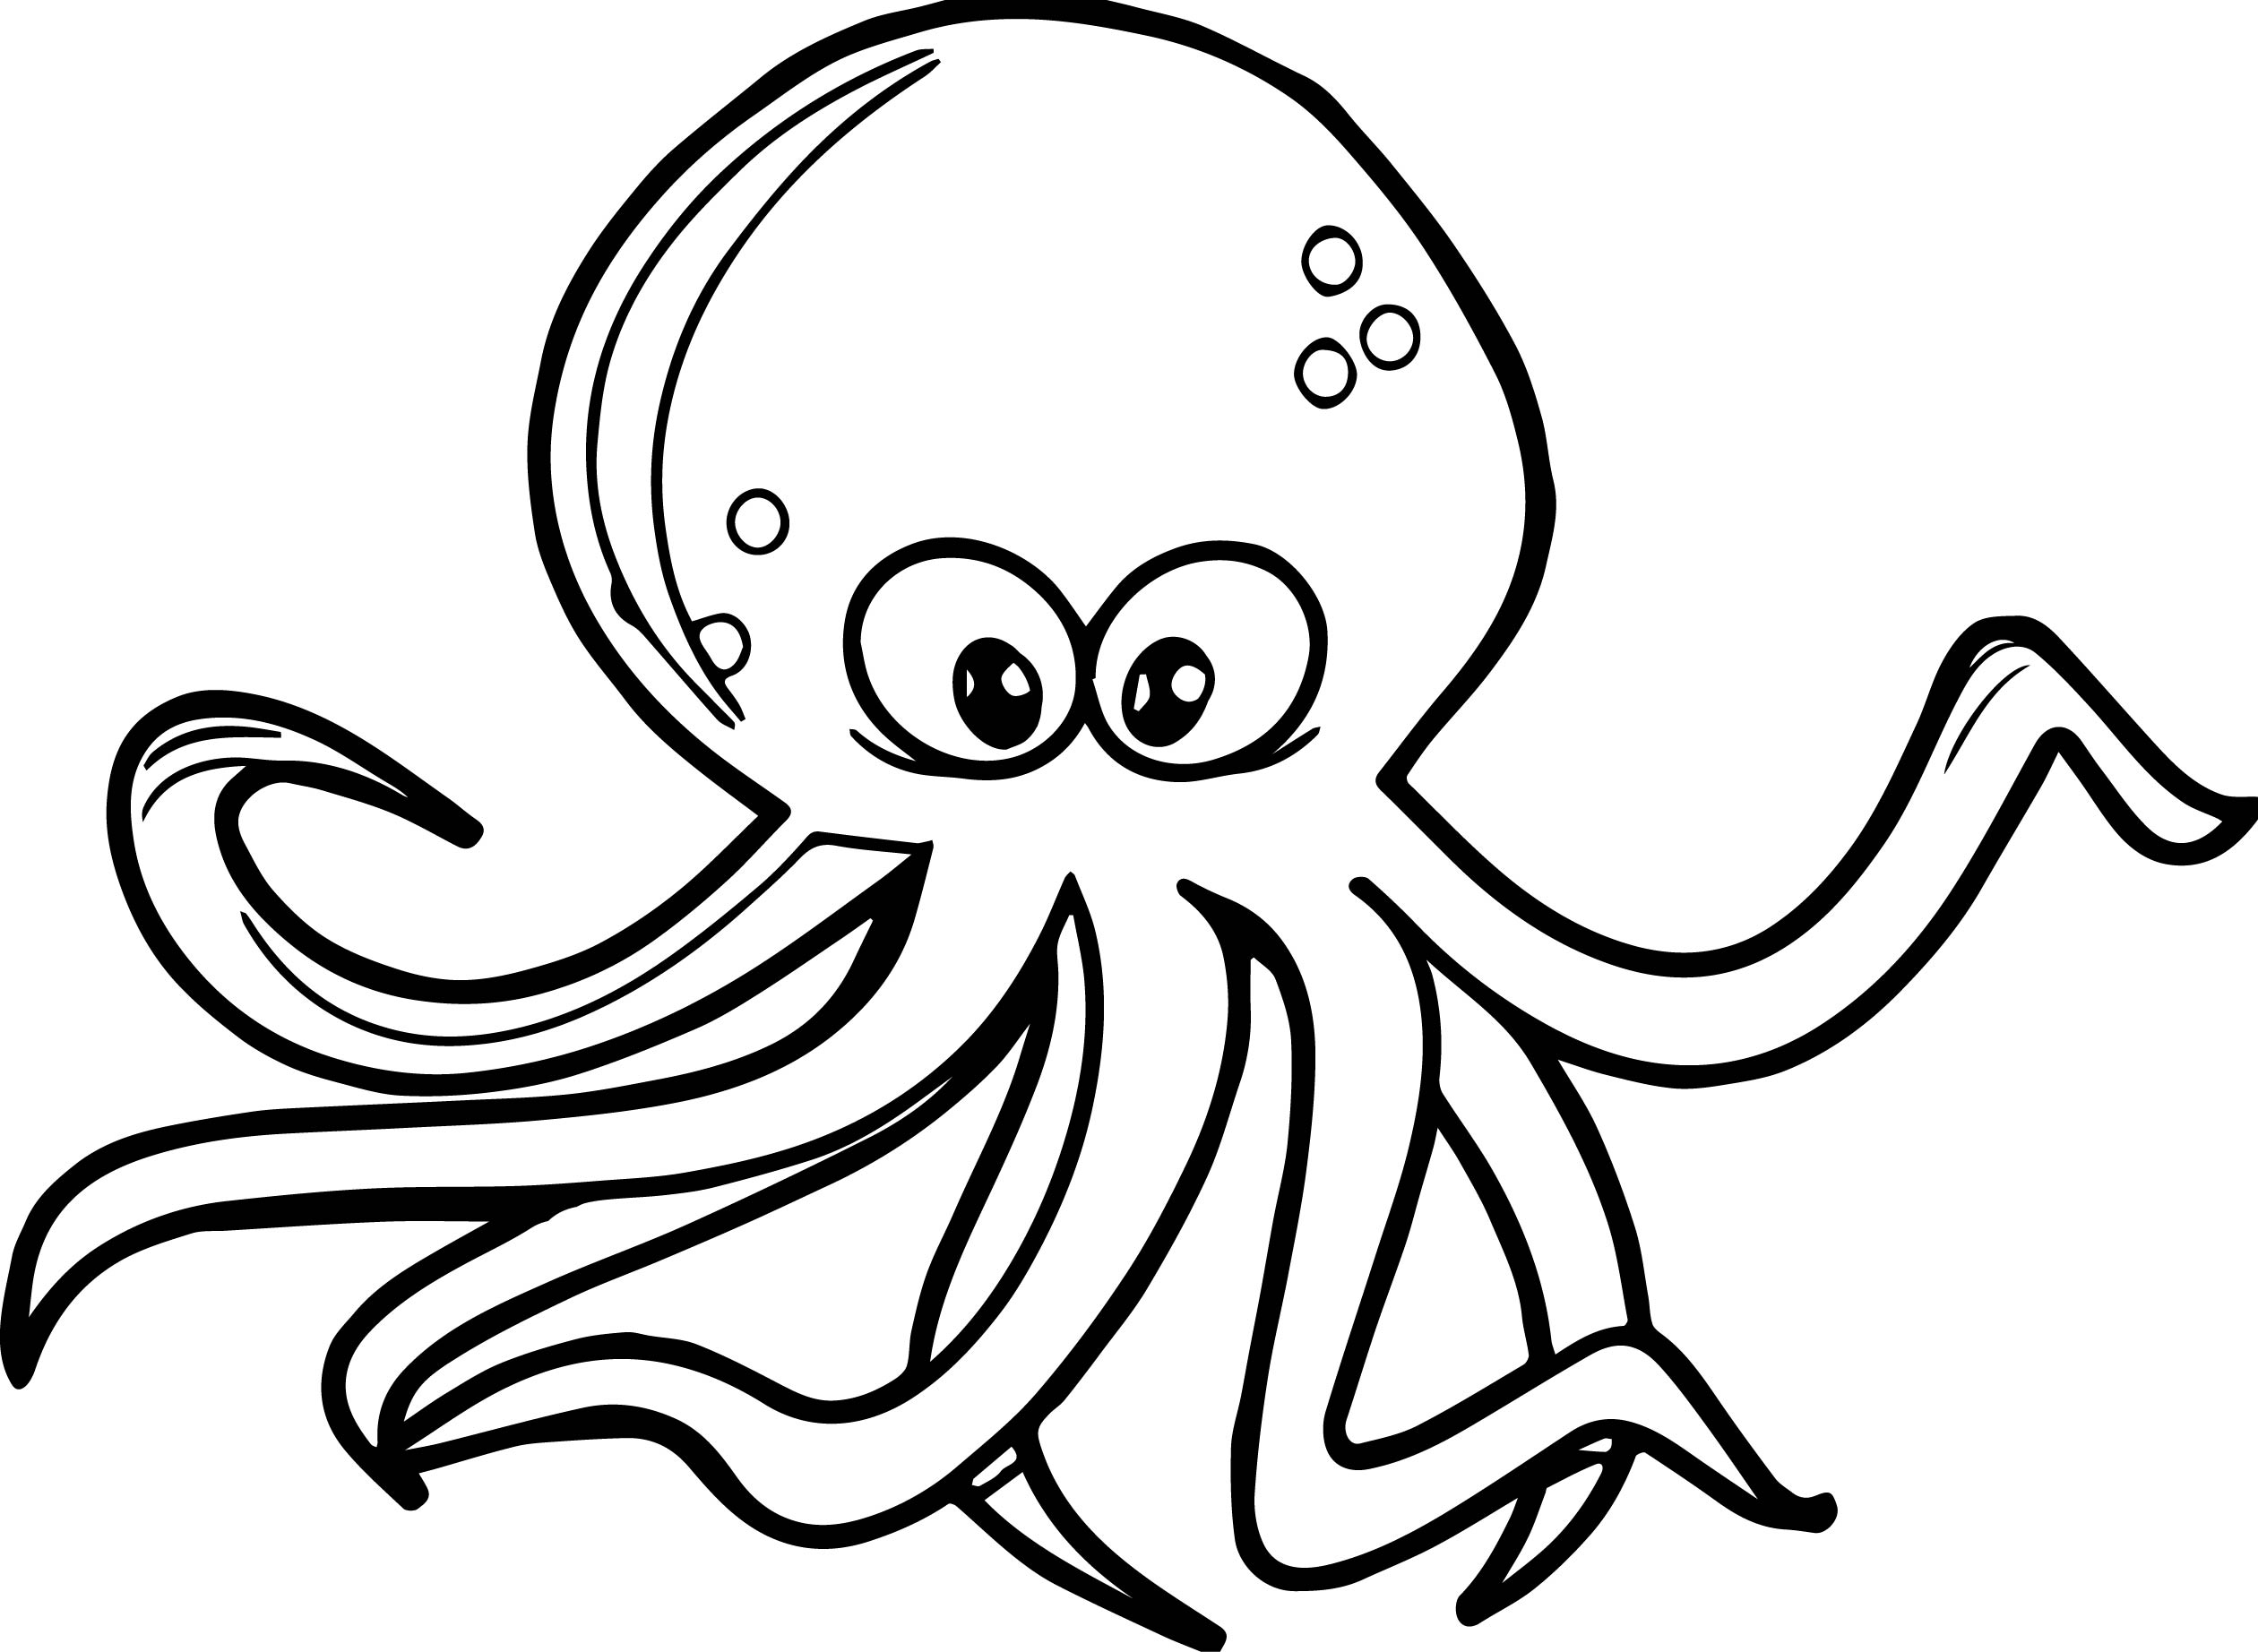 coloring octopus colour octopus coloring download octopus coloring for free 2019 octopus colour coloring